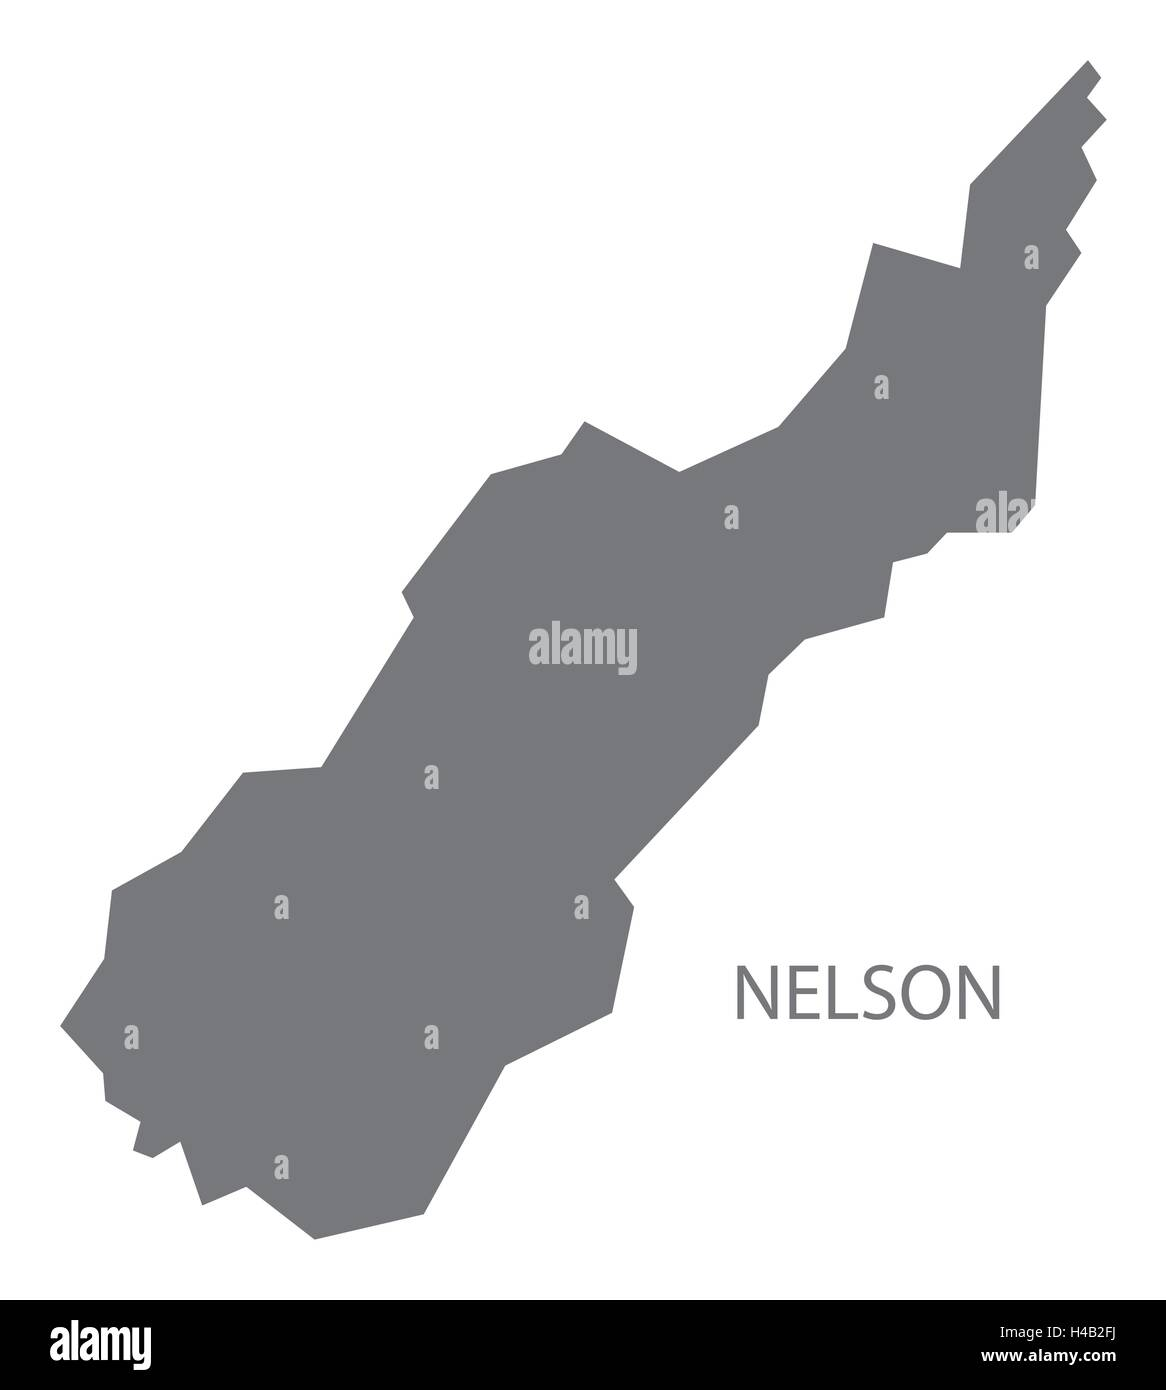 Map Nelson New Zealand.Nelson New Zealand Map Grey Stock Vector Art Illustration Vector